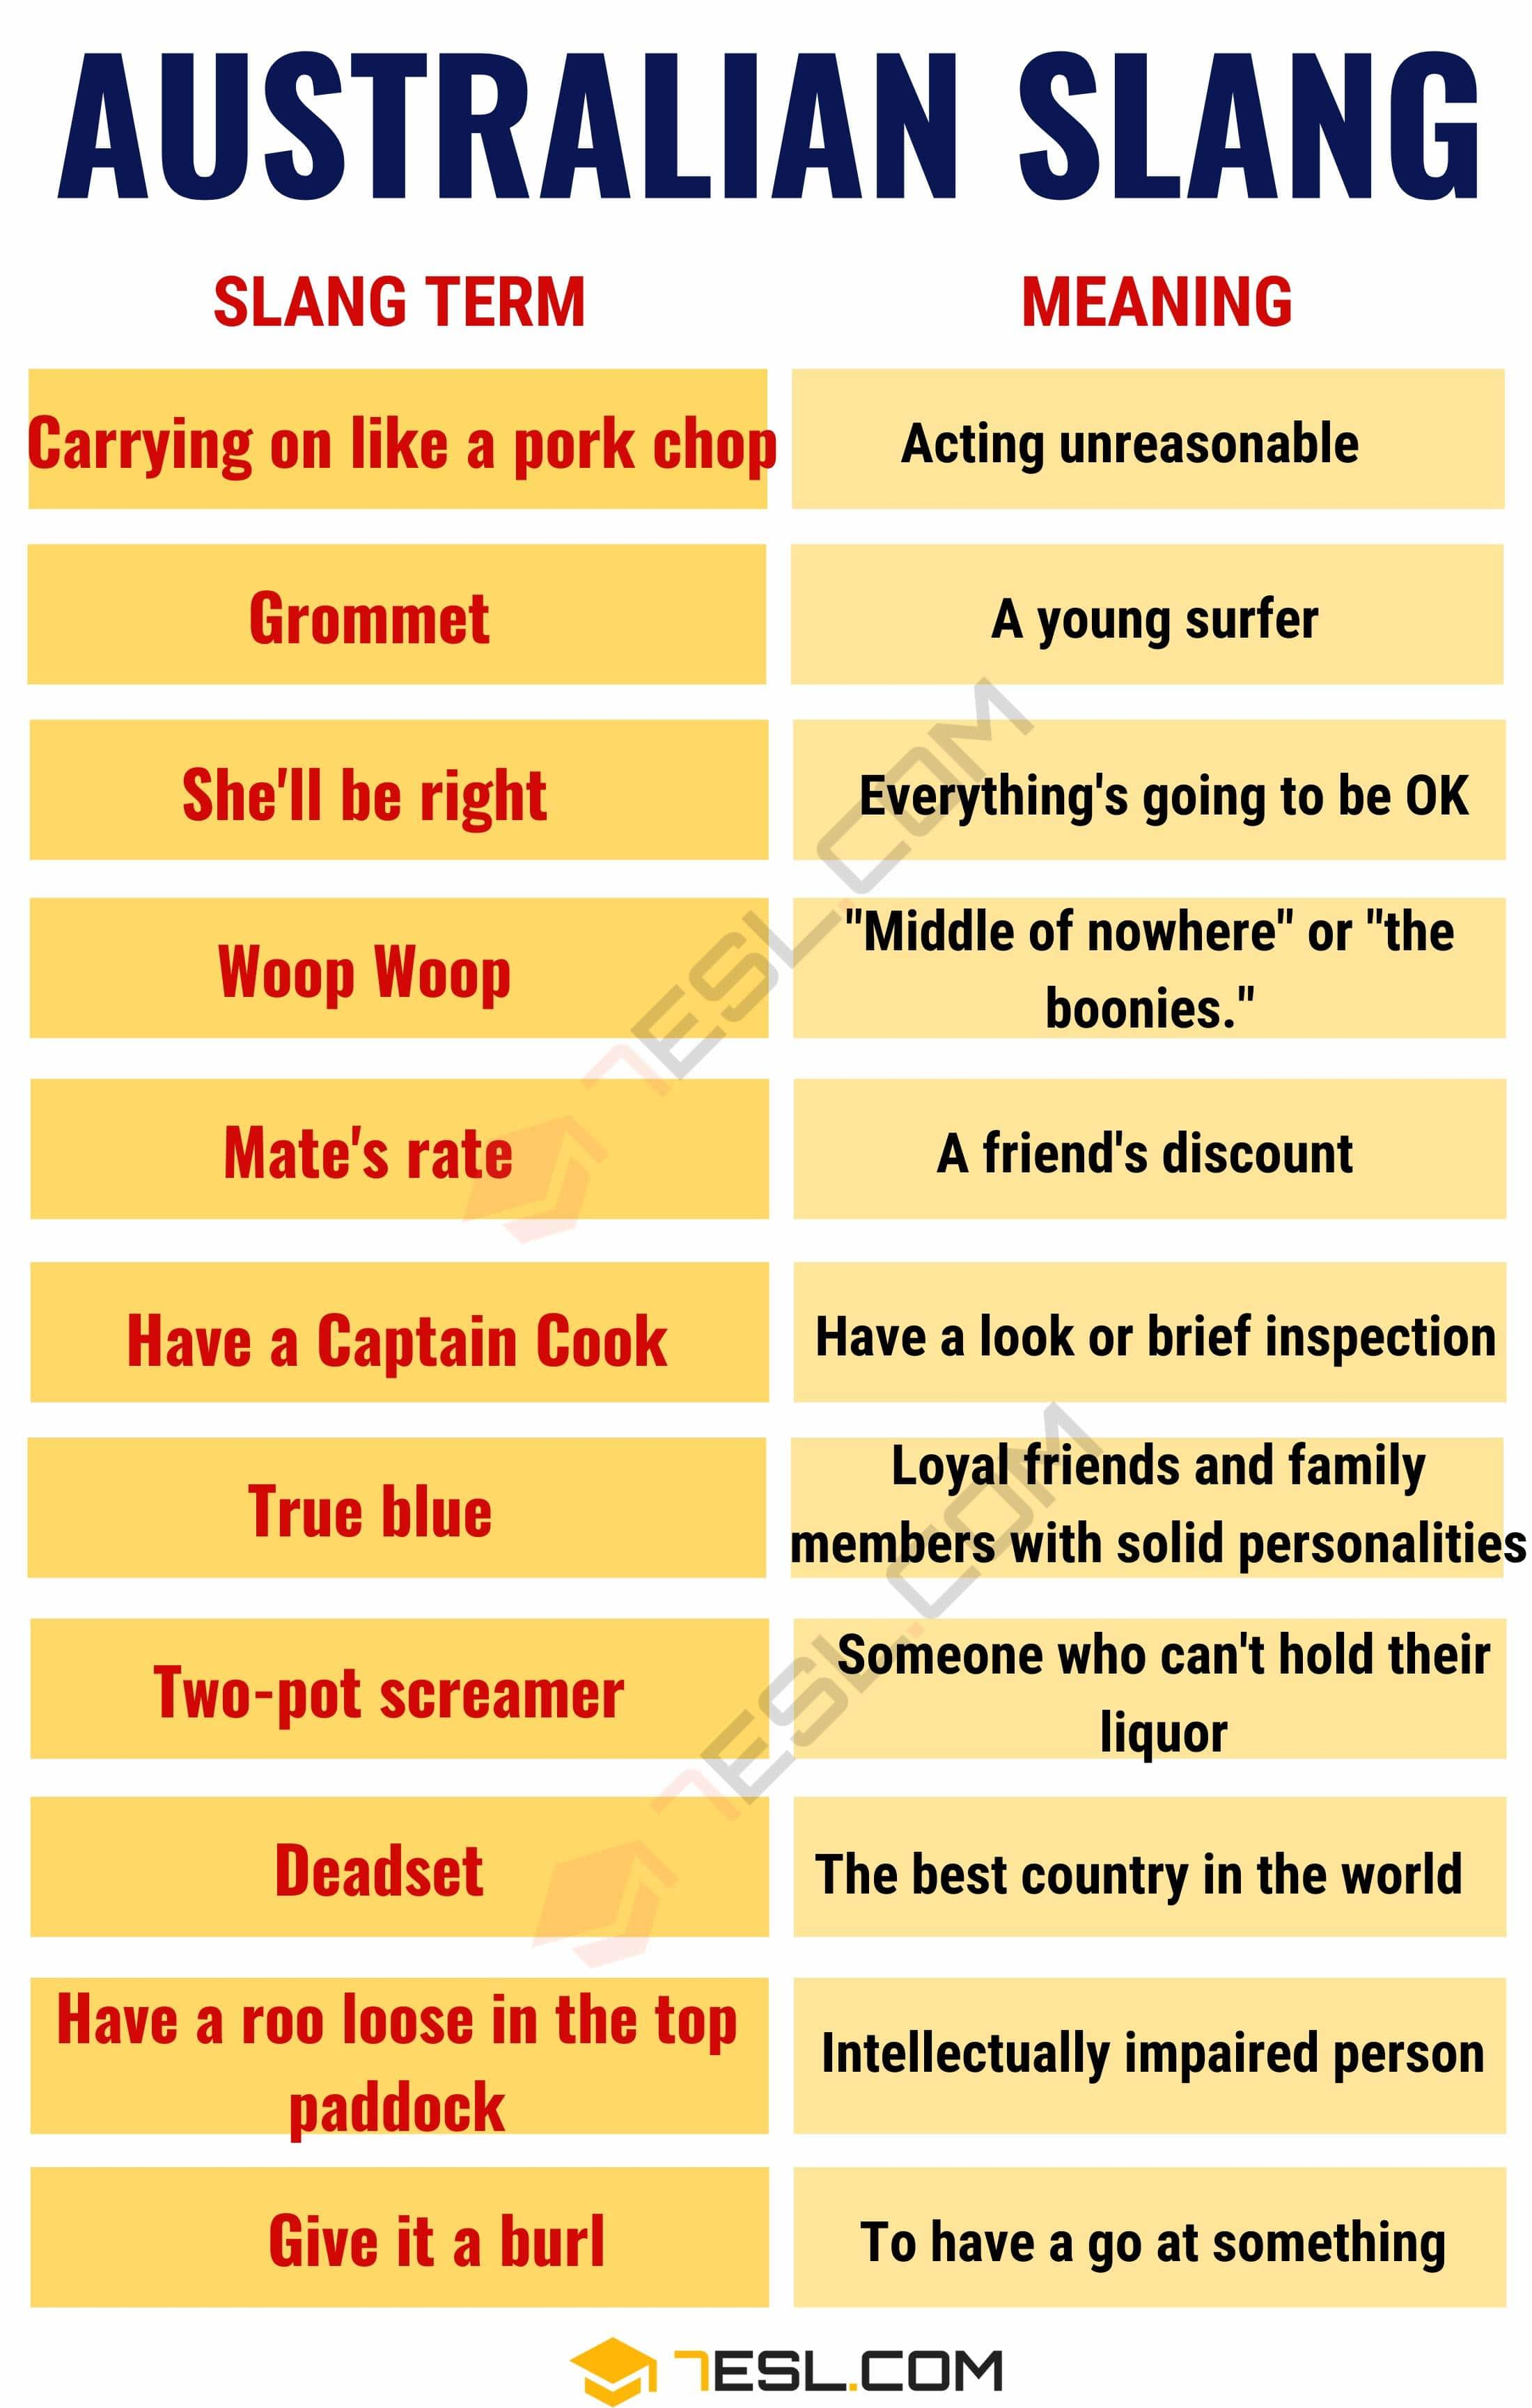 Australian Slang Words: The 23 Aussie Slang Words You Need to Know